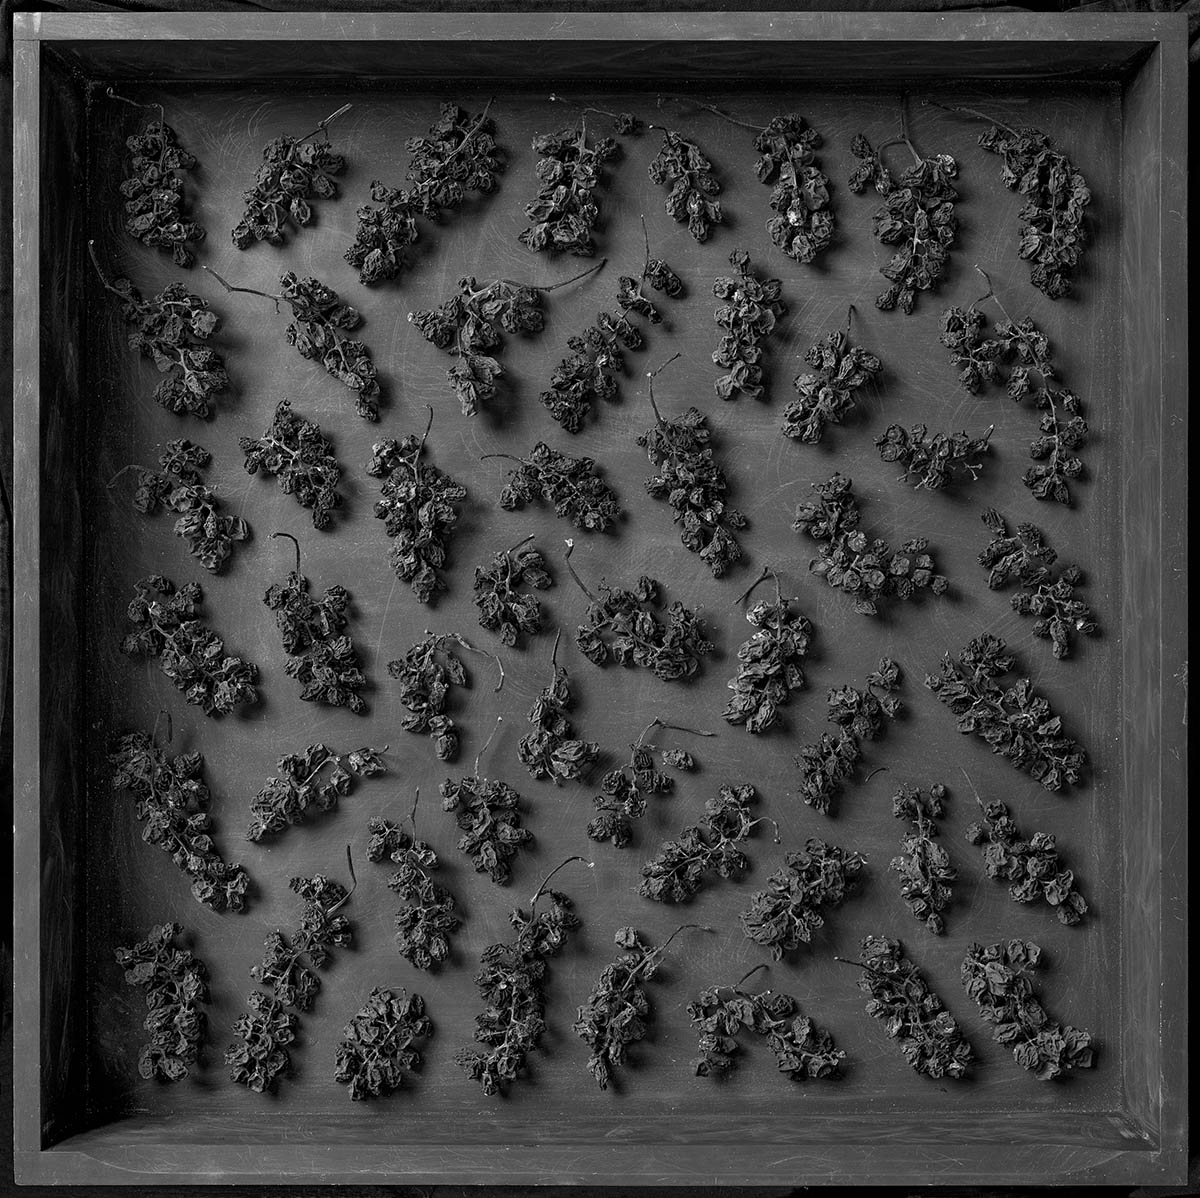 An arrangement of a number of dried grappoli (bunches of grapes) in a shallow black tray or drawer.